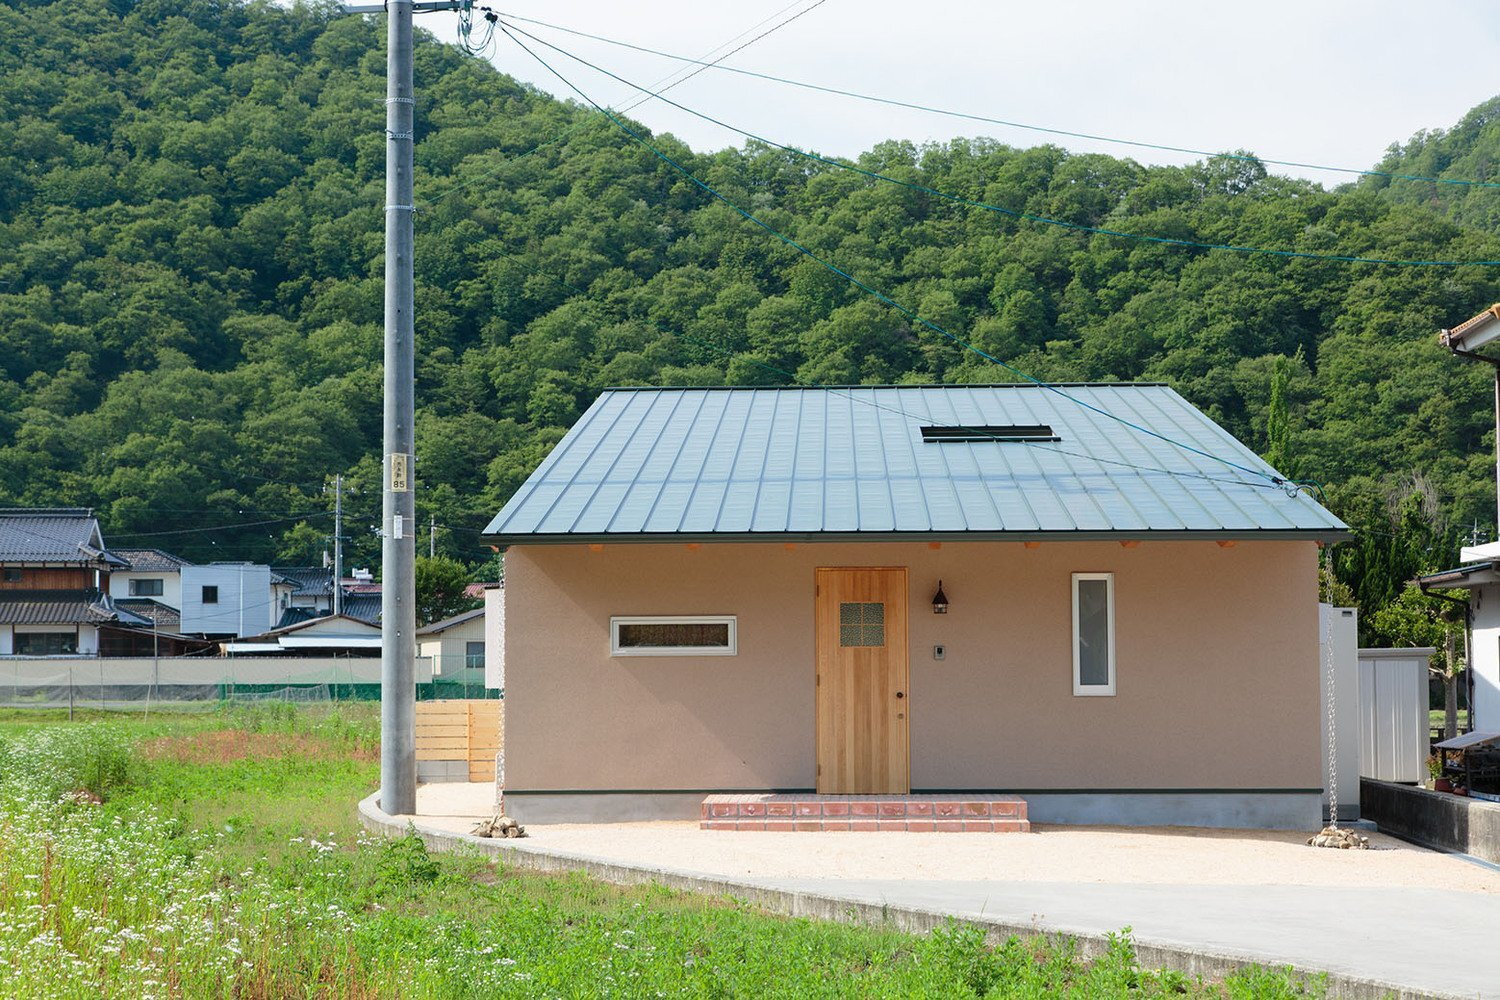 House in Yoshinaga - Tomoyuki Uchida - Japan - Exterior - Humble Homes